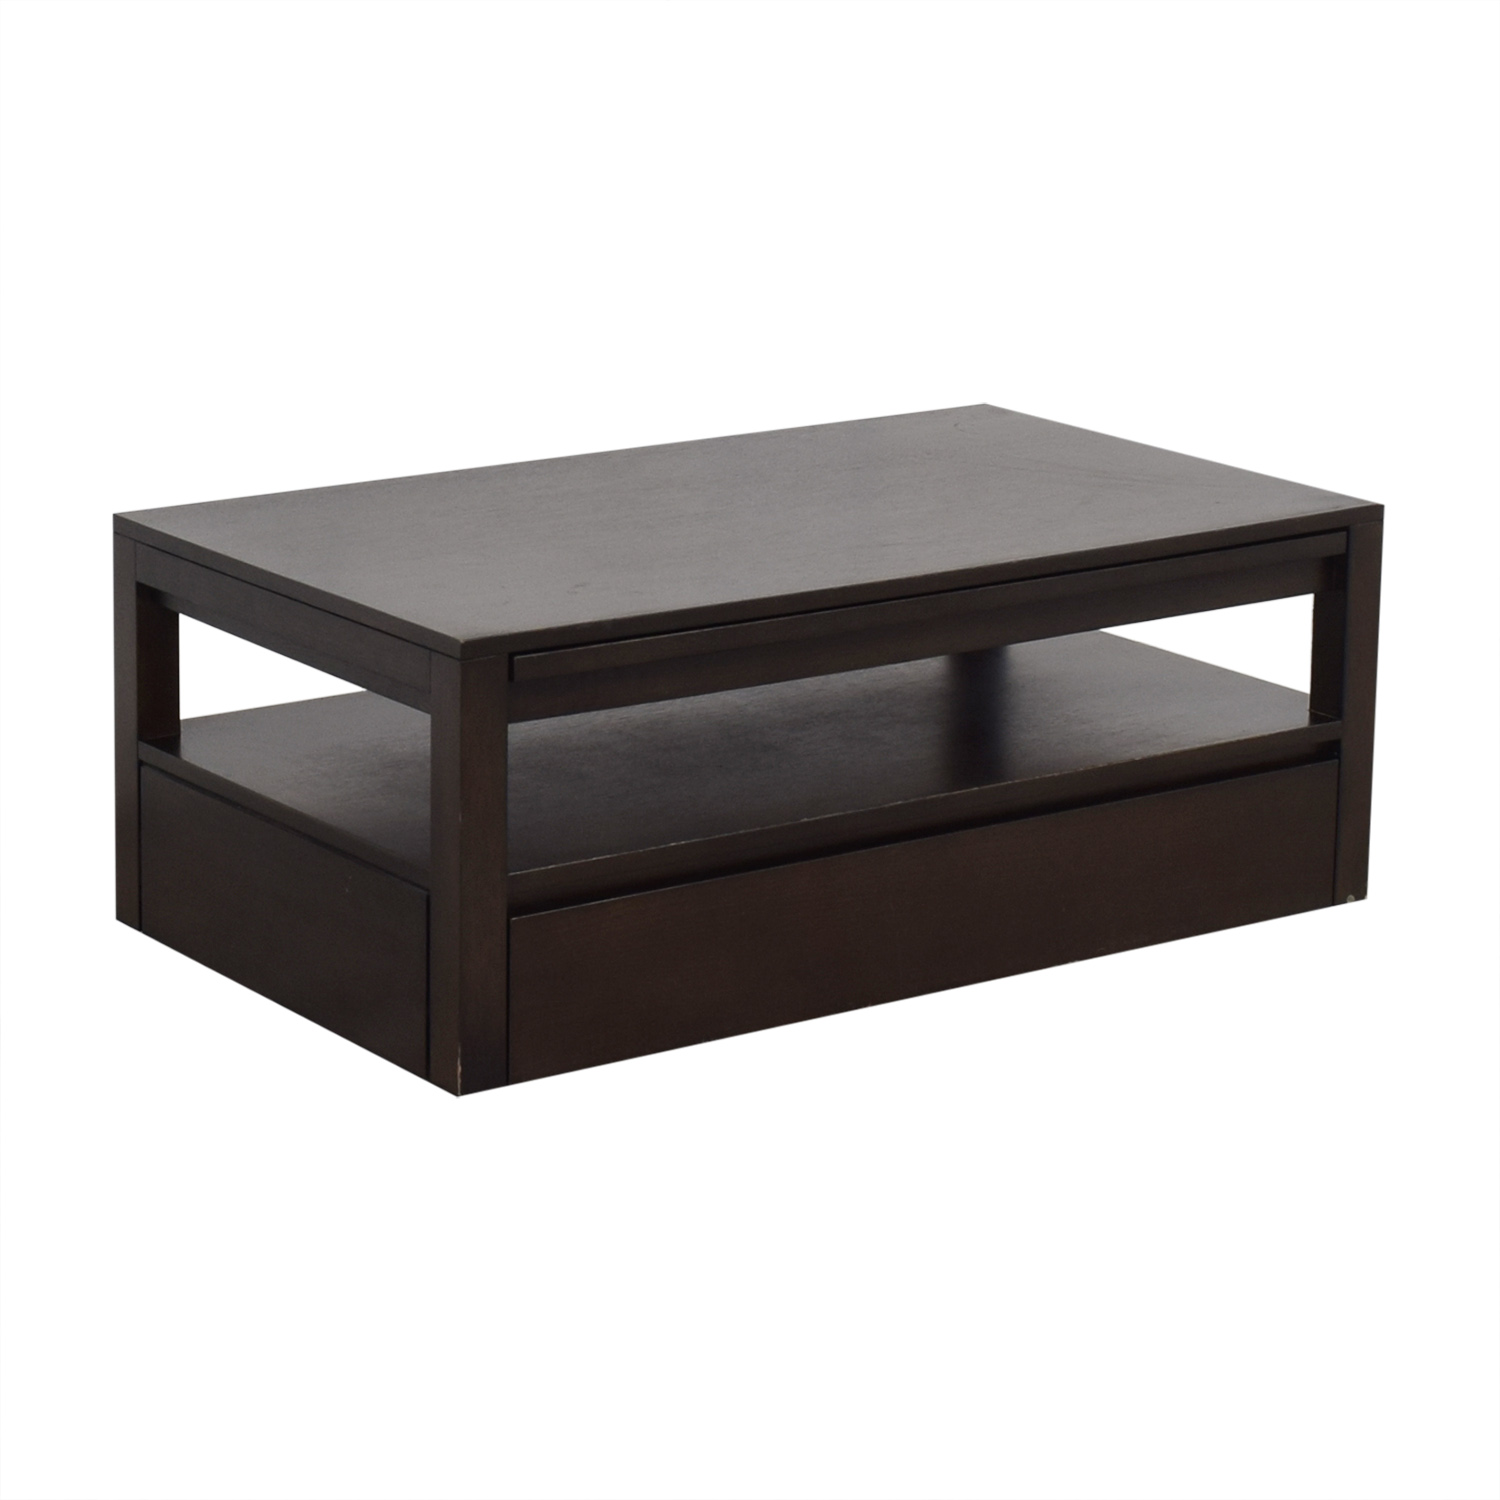 Crate & Barrel Crate & Barrel Expandable Coffee Table discount